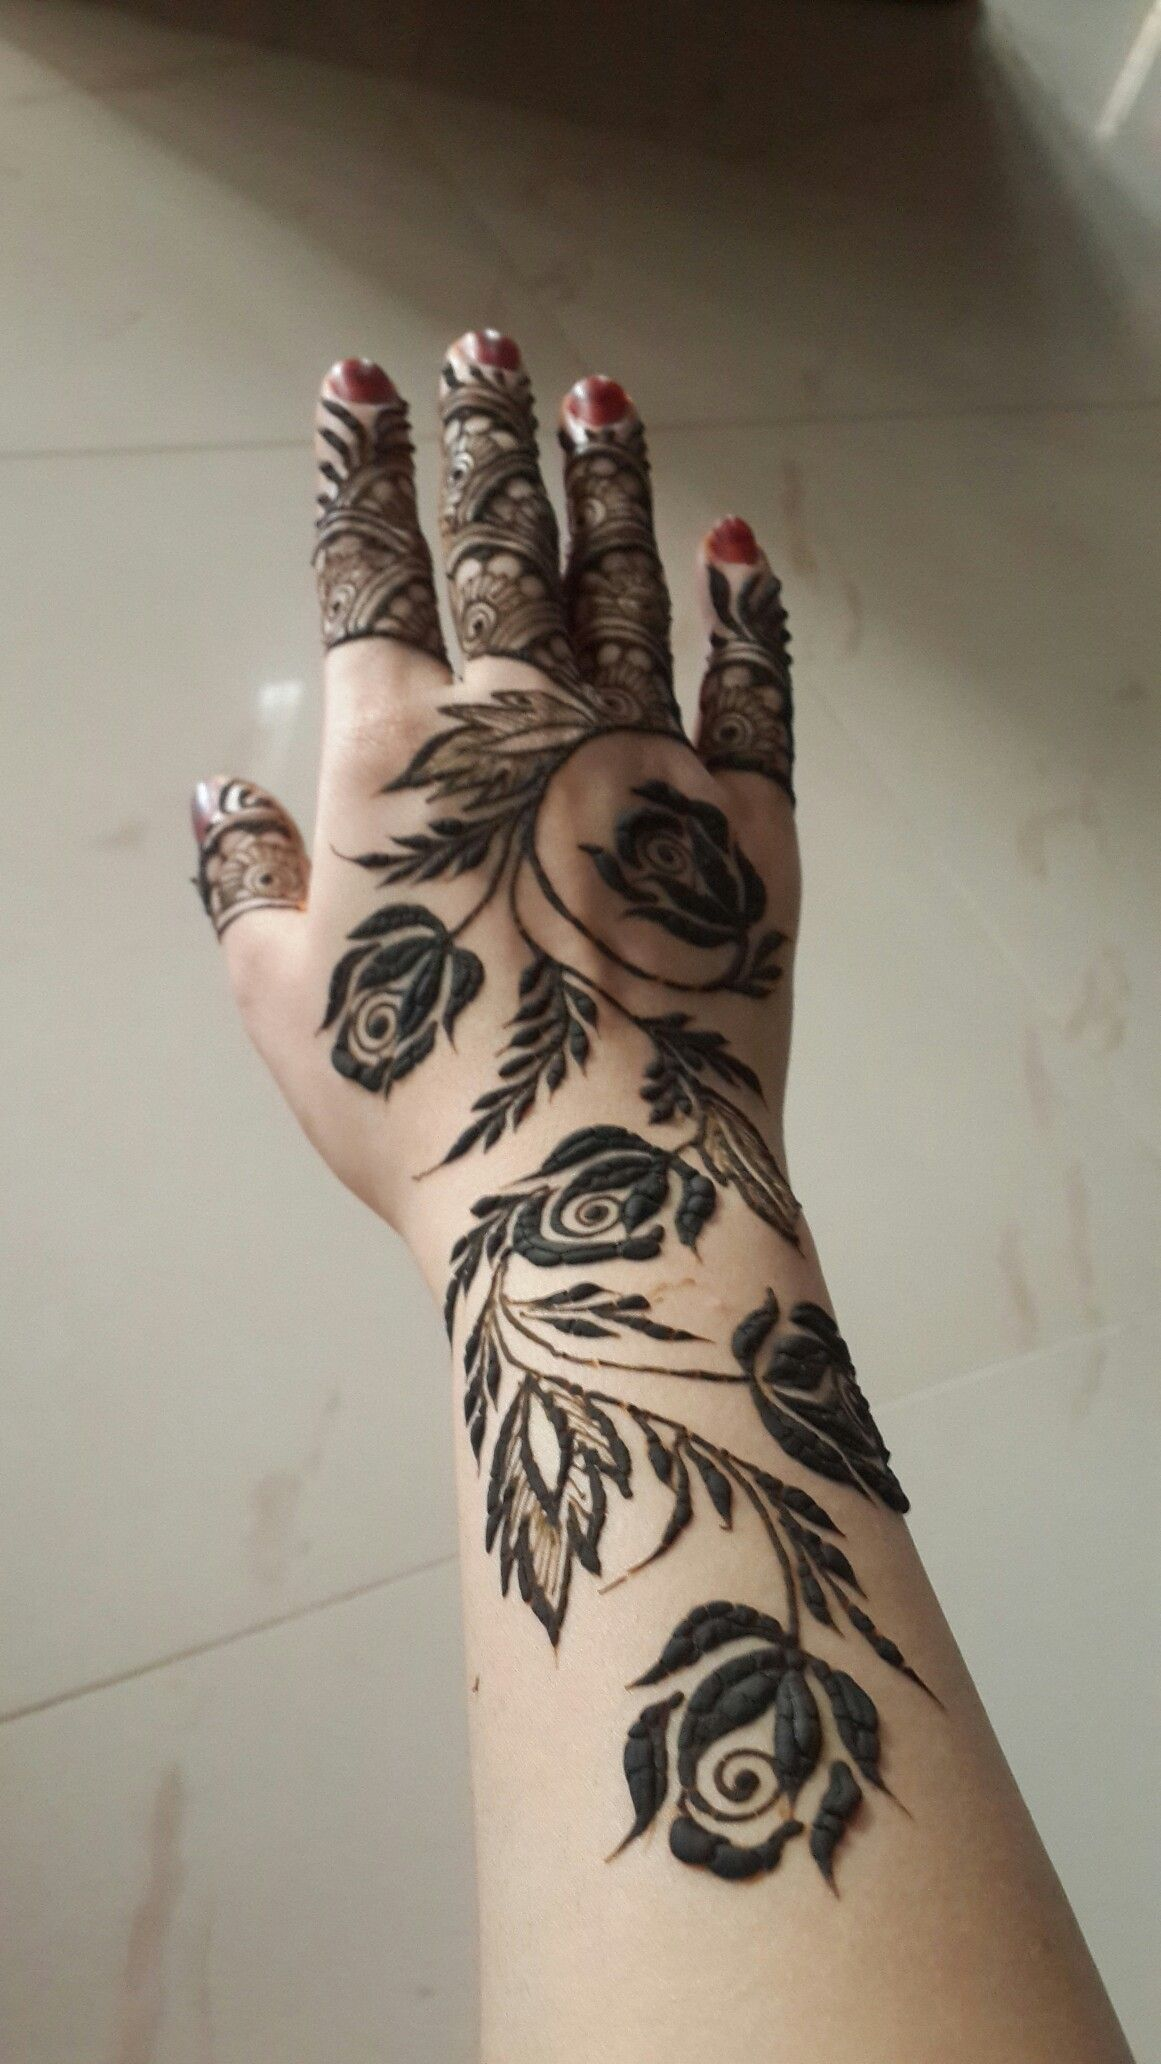 Pin By Lilly Mirtha Rodriguez Johnson On Arebic Henna Henna Designs Hand Rose Mehndi Designs Latest Henna Designs